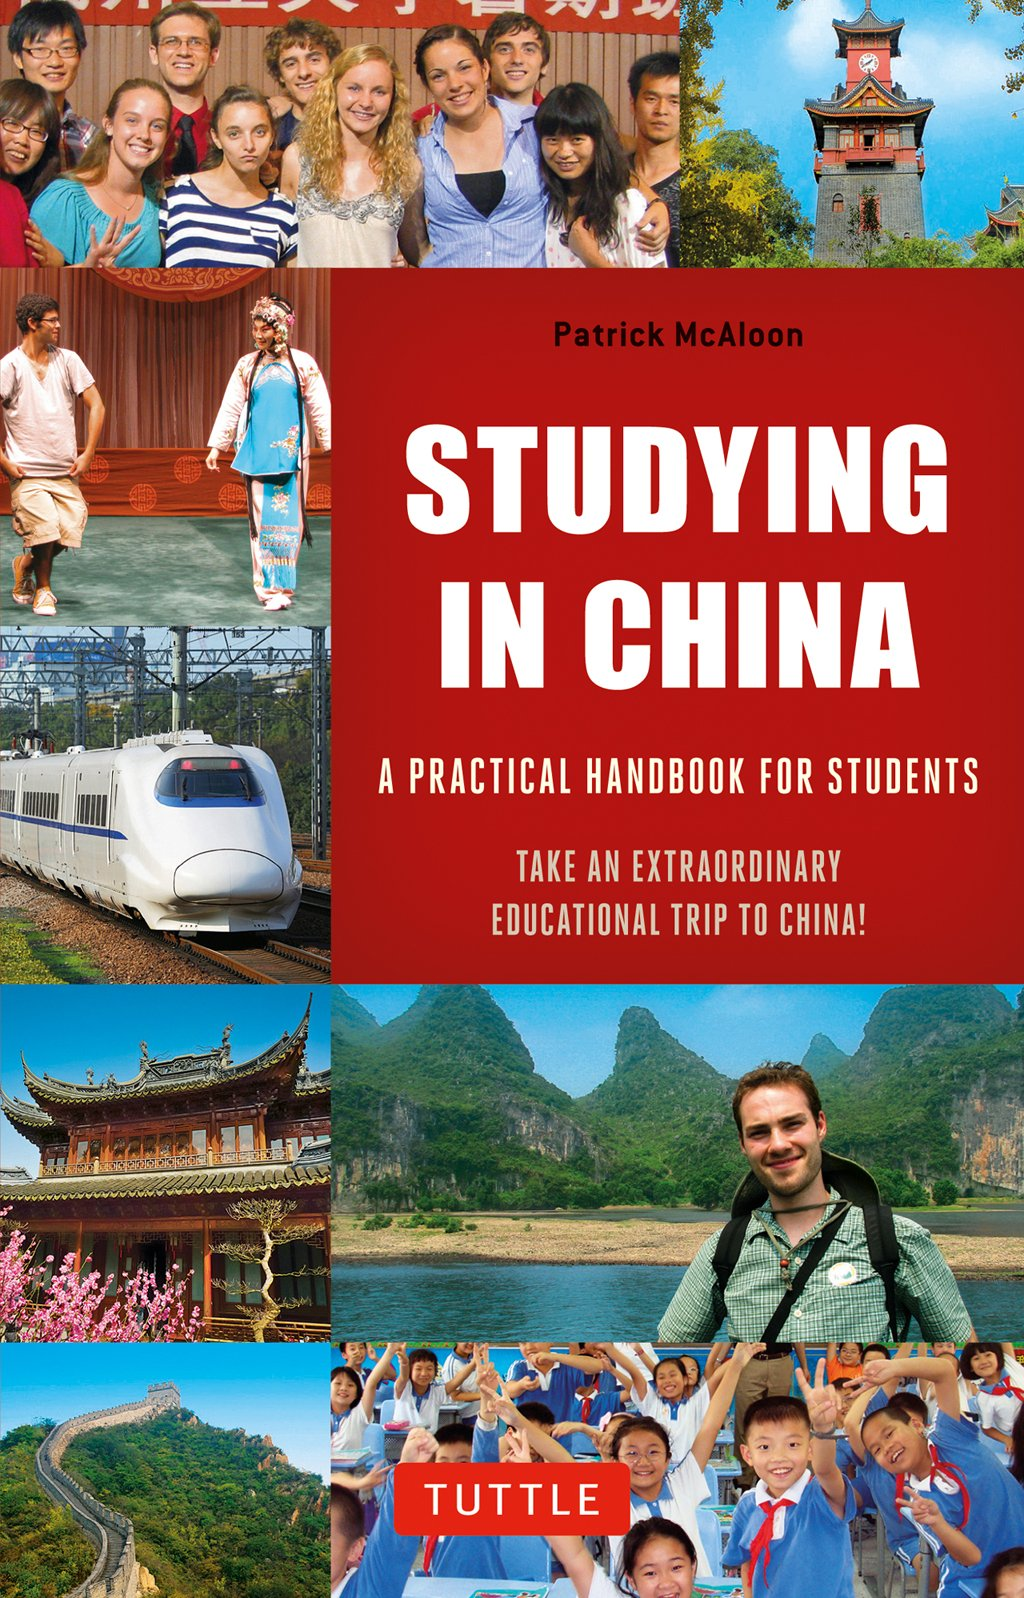 Studying in China: A Practical Handbook for Students